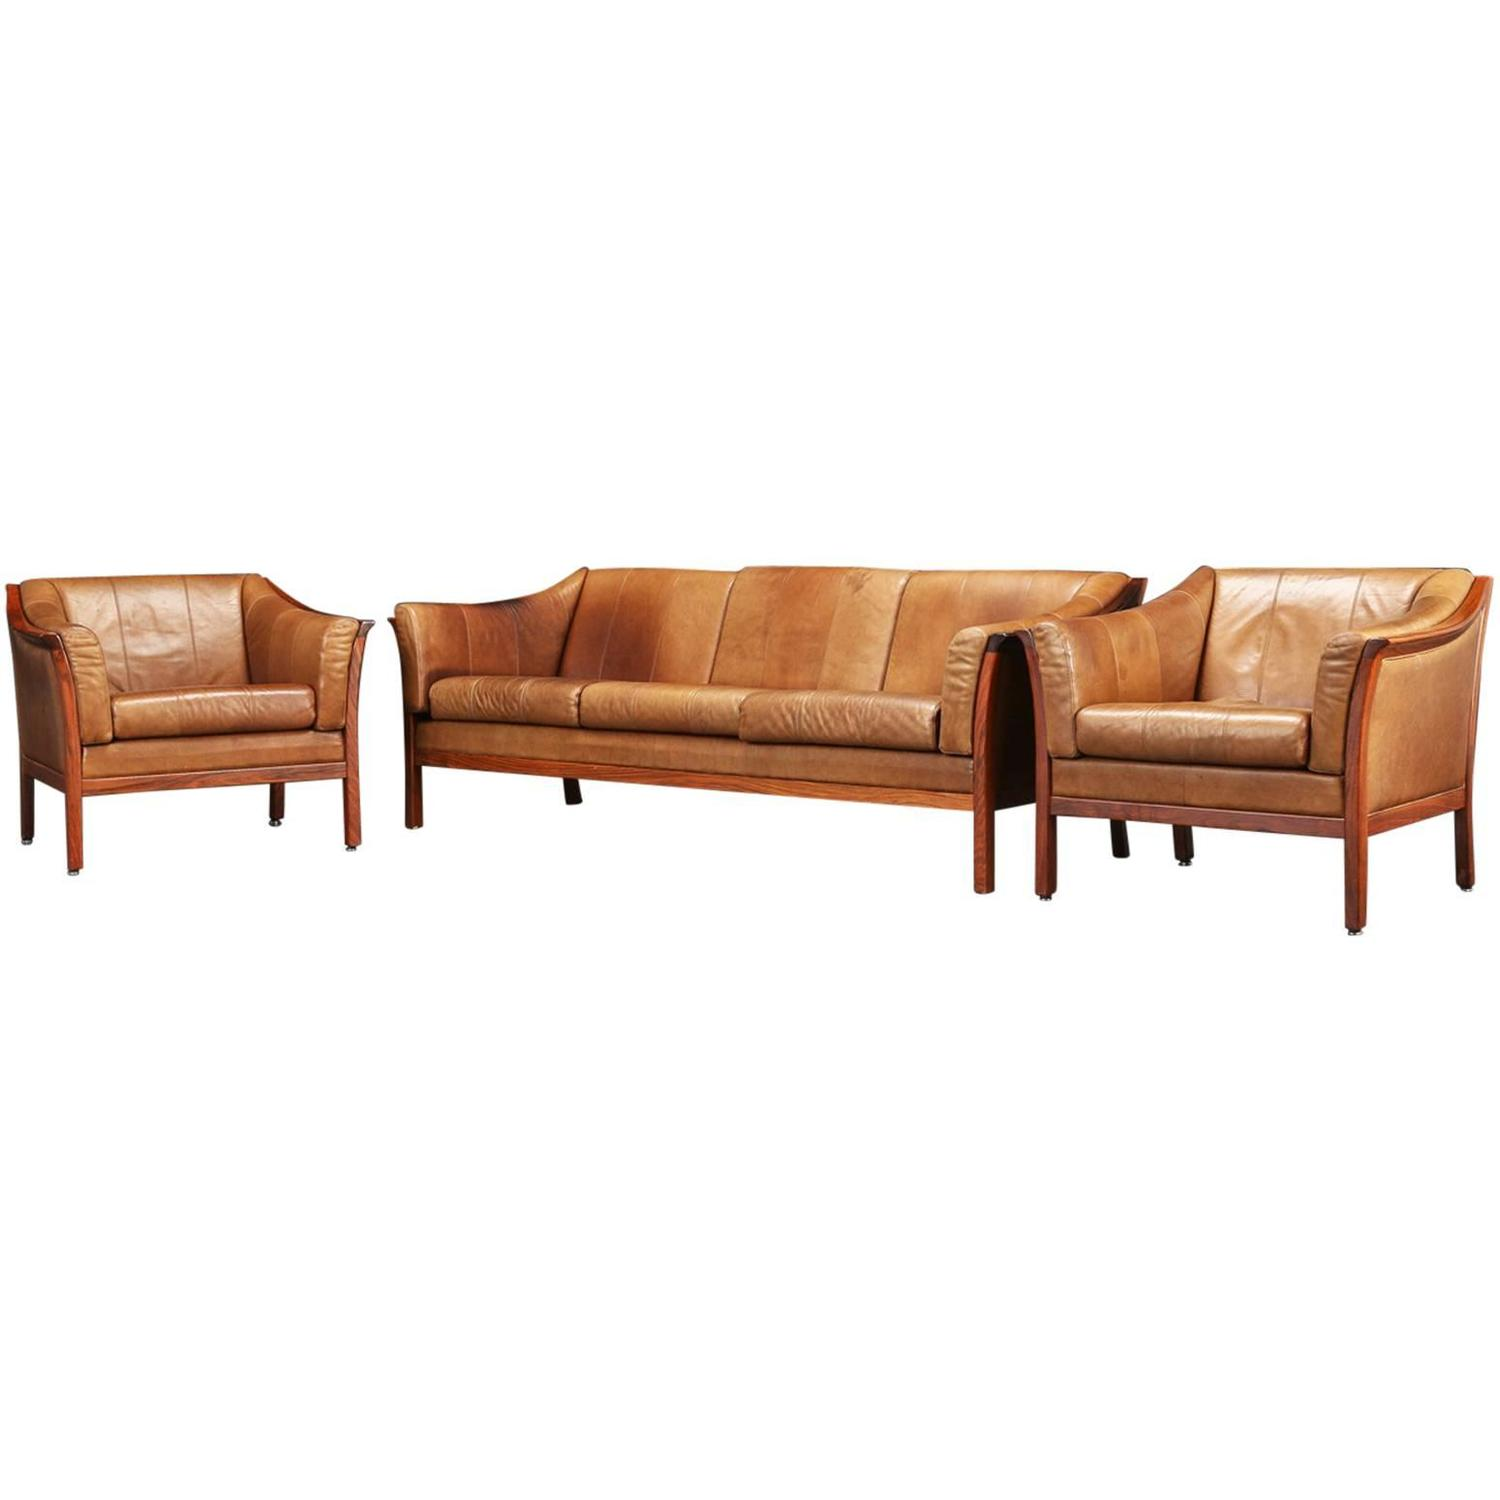 Good Quality Set Of Danish Rosewood And Leather Living Room Furniture At 1stdibs